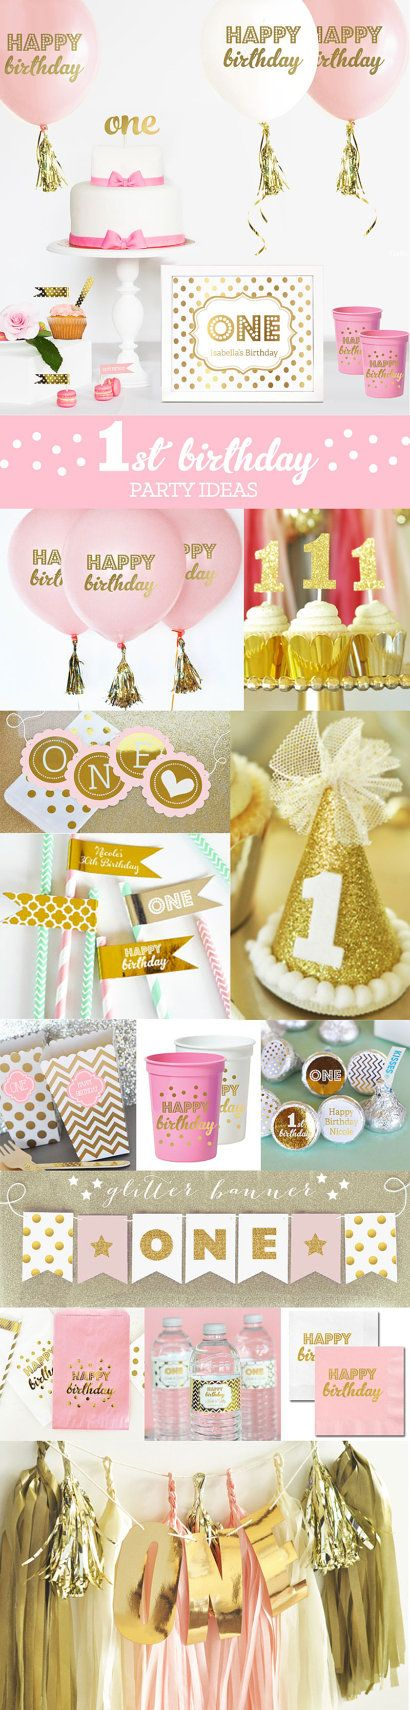 Pink and Gold Tassel Garland DIY KITS are a stylish way to dress up your celebration! These easy to assemble Tissue Garland Kits come with easy to